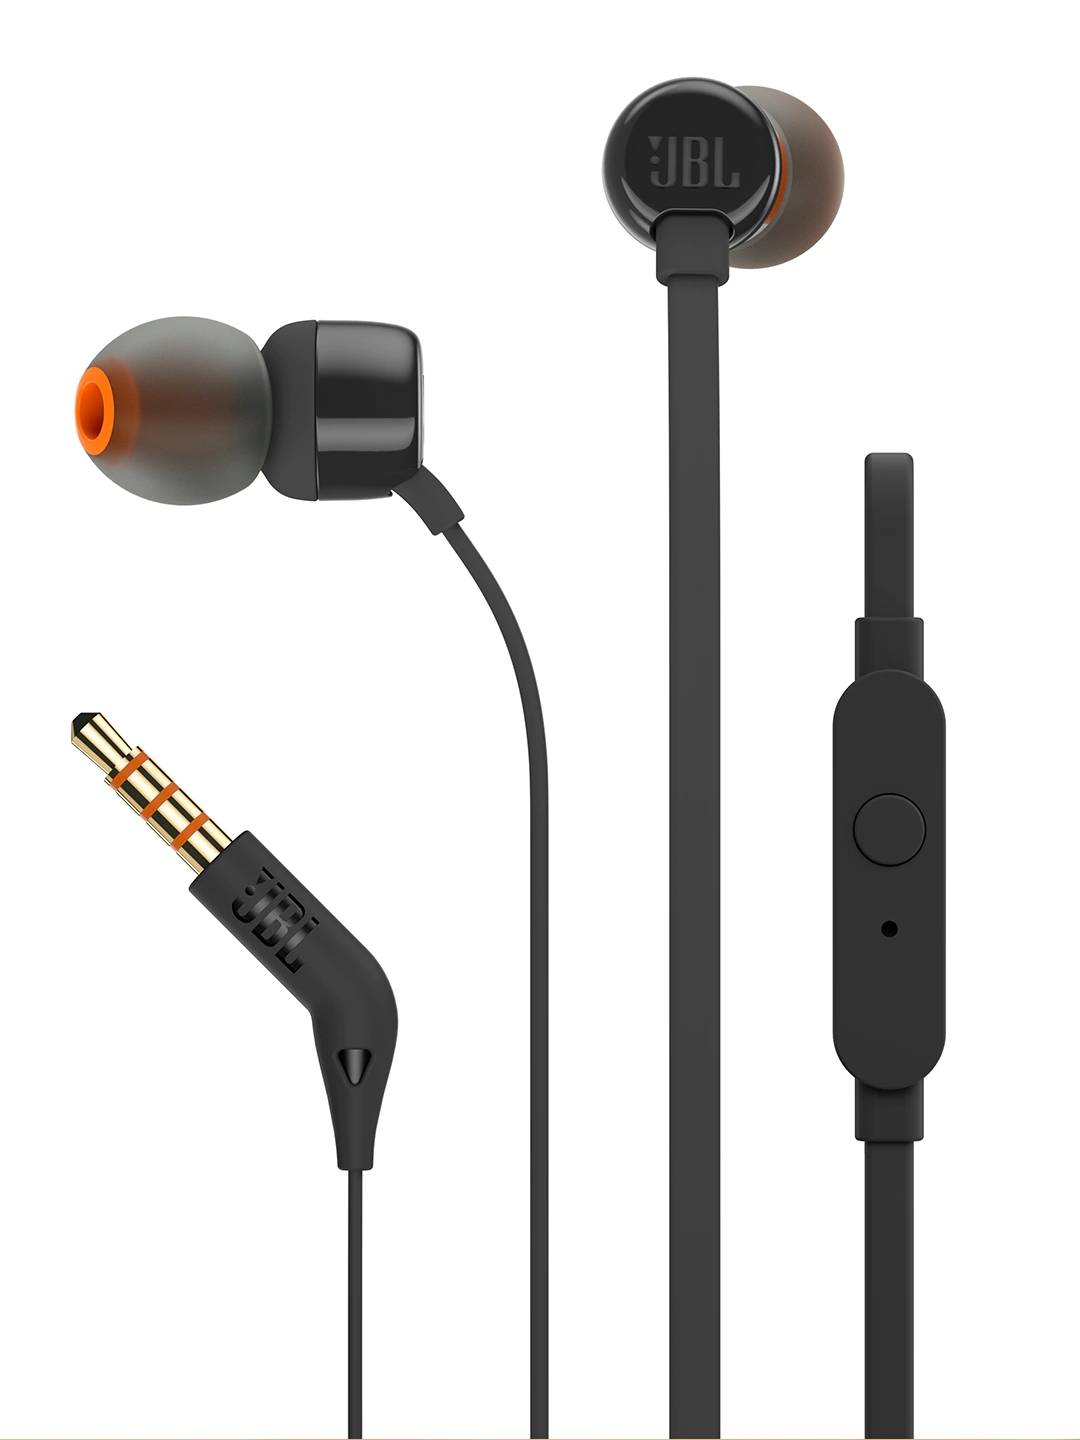 JBL T160 M In Ear Black Wired Headphones with Mic